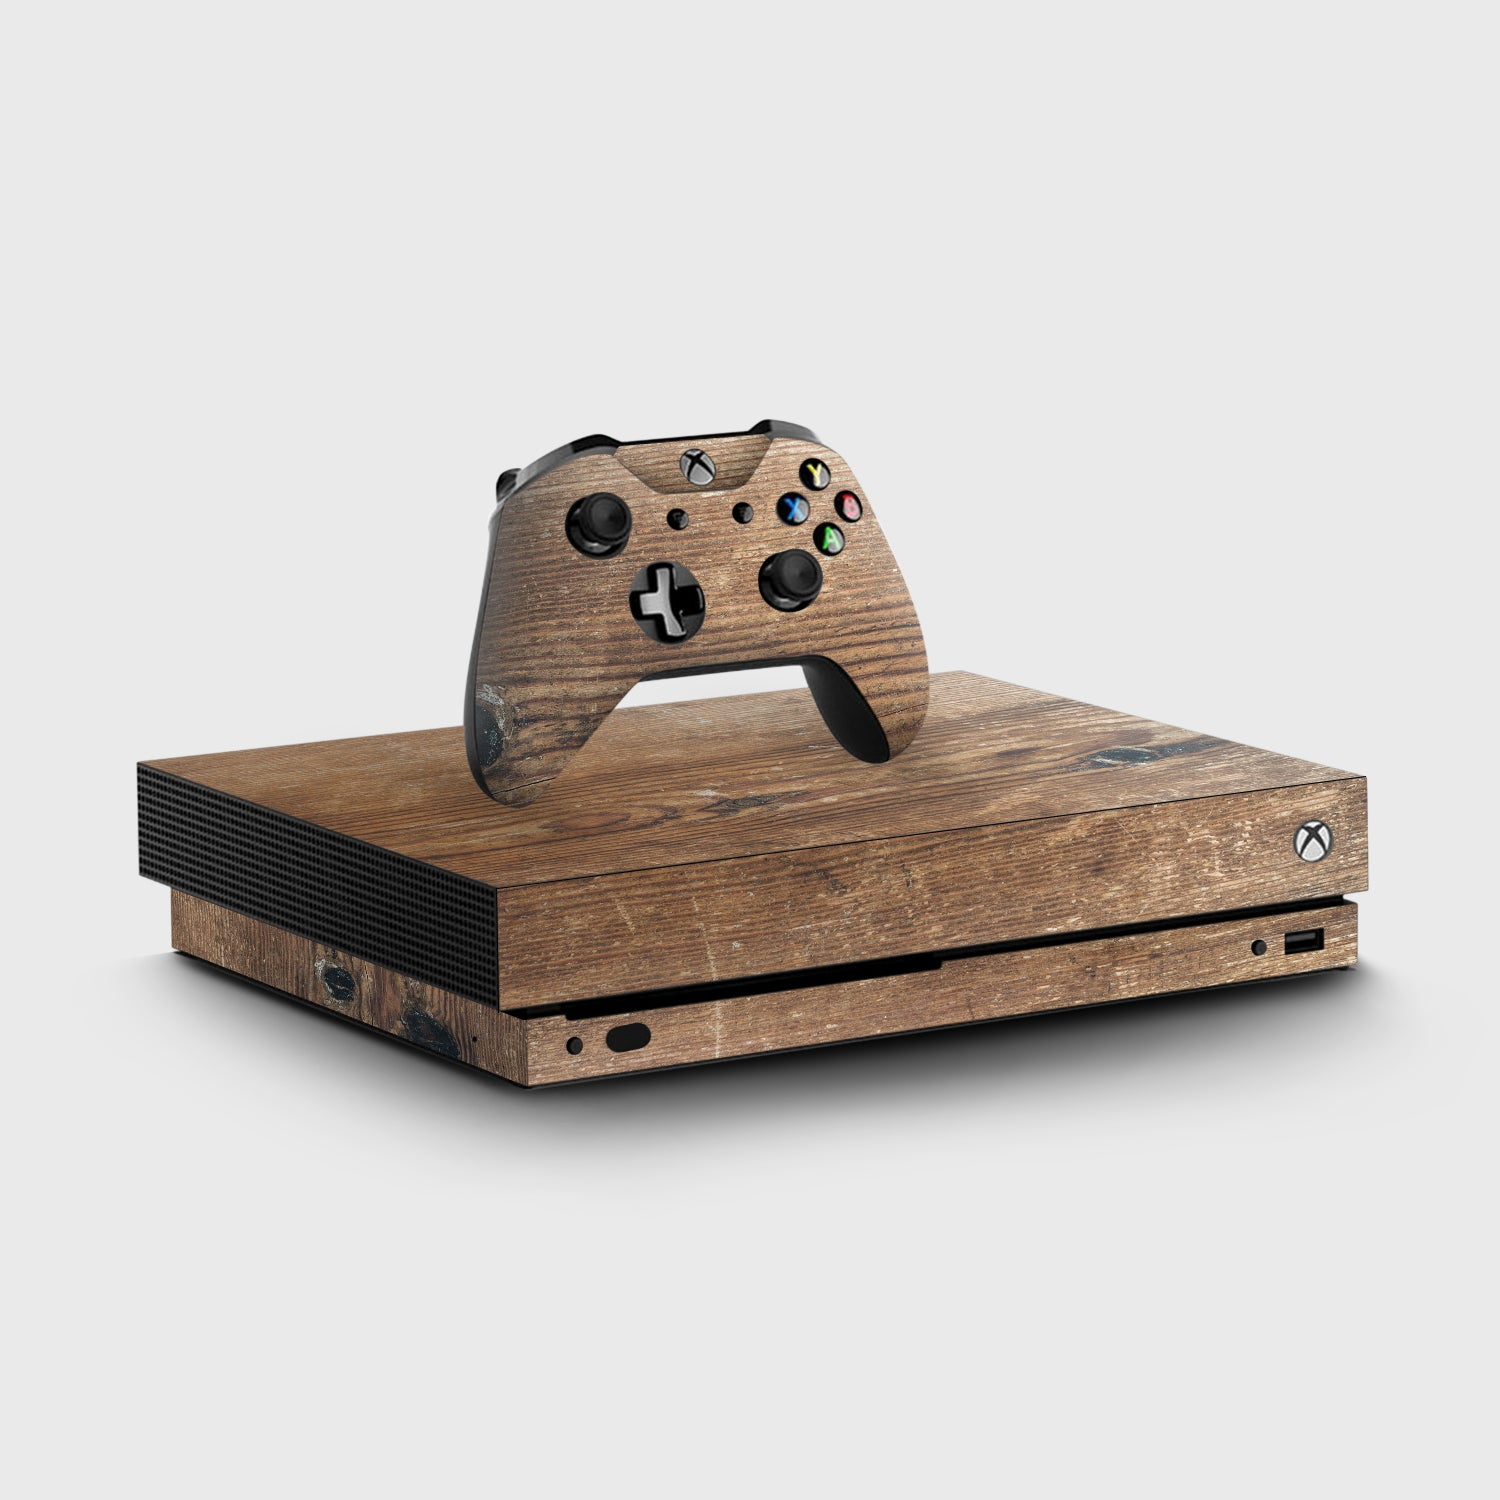 PINE WOOD Xbox one x skins | Pigtou